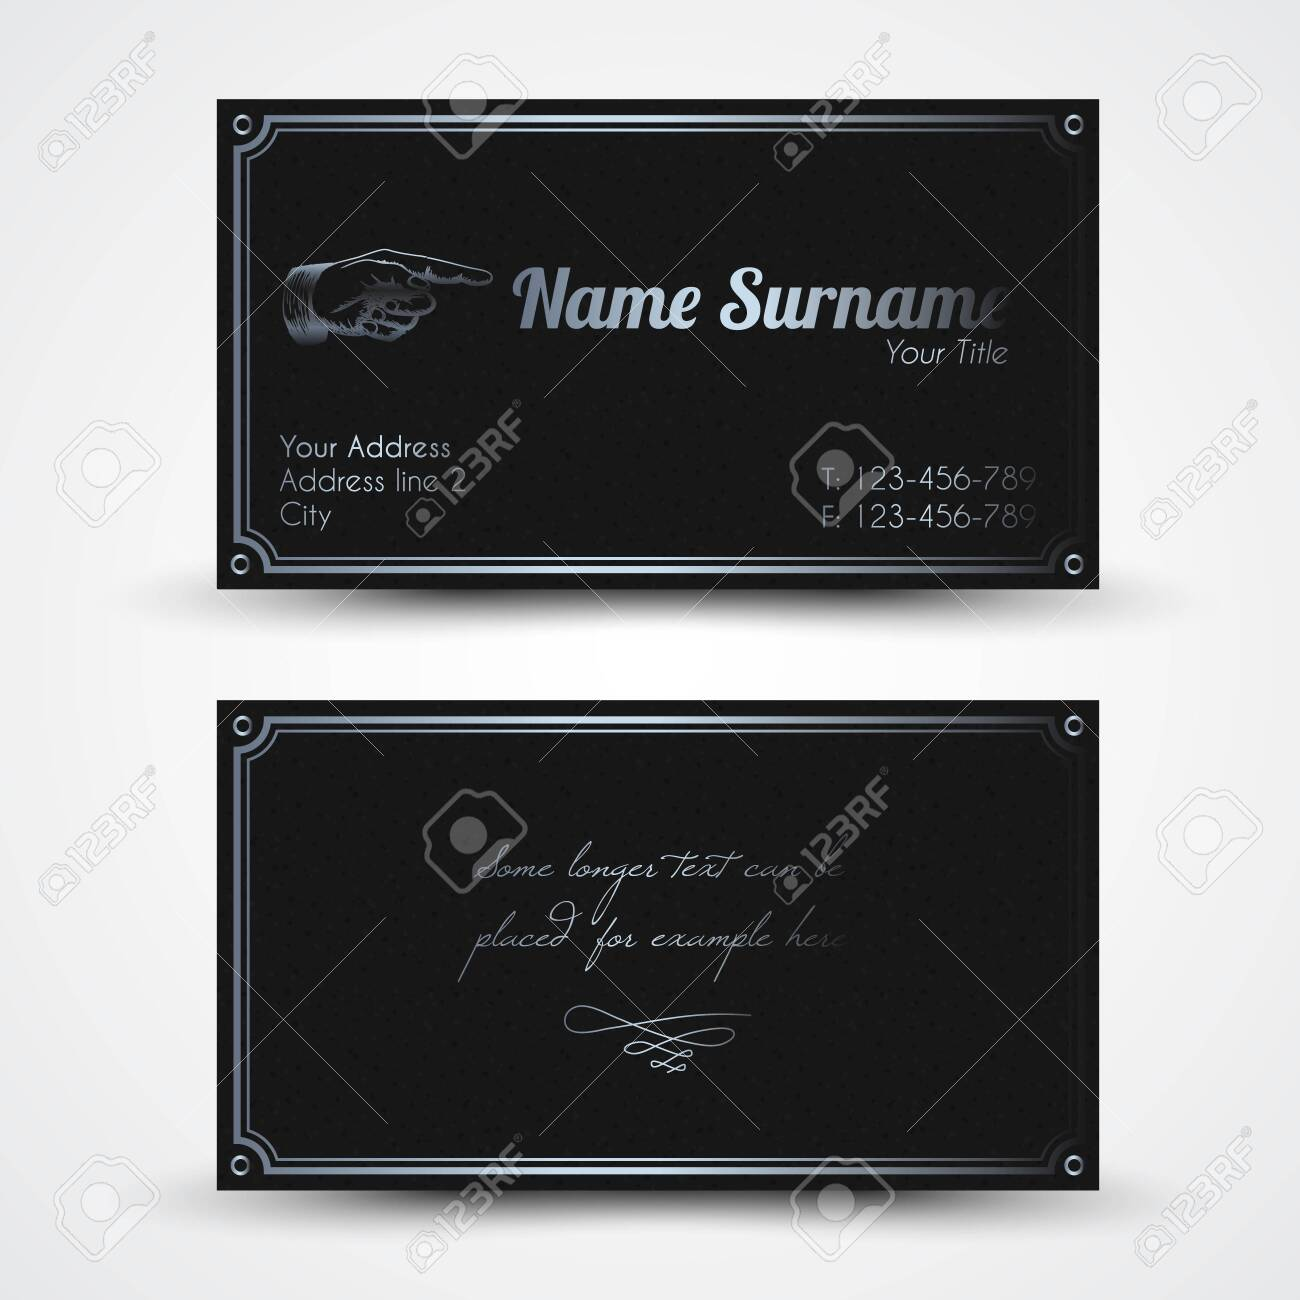 Vector old-style retro vintage business card - both front and back side, dark with silver color - 146959276